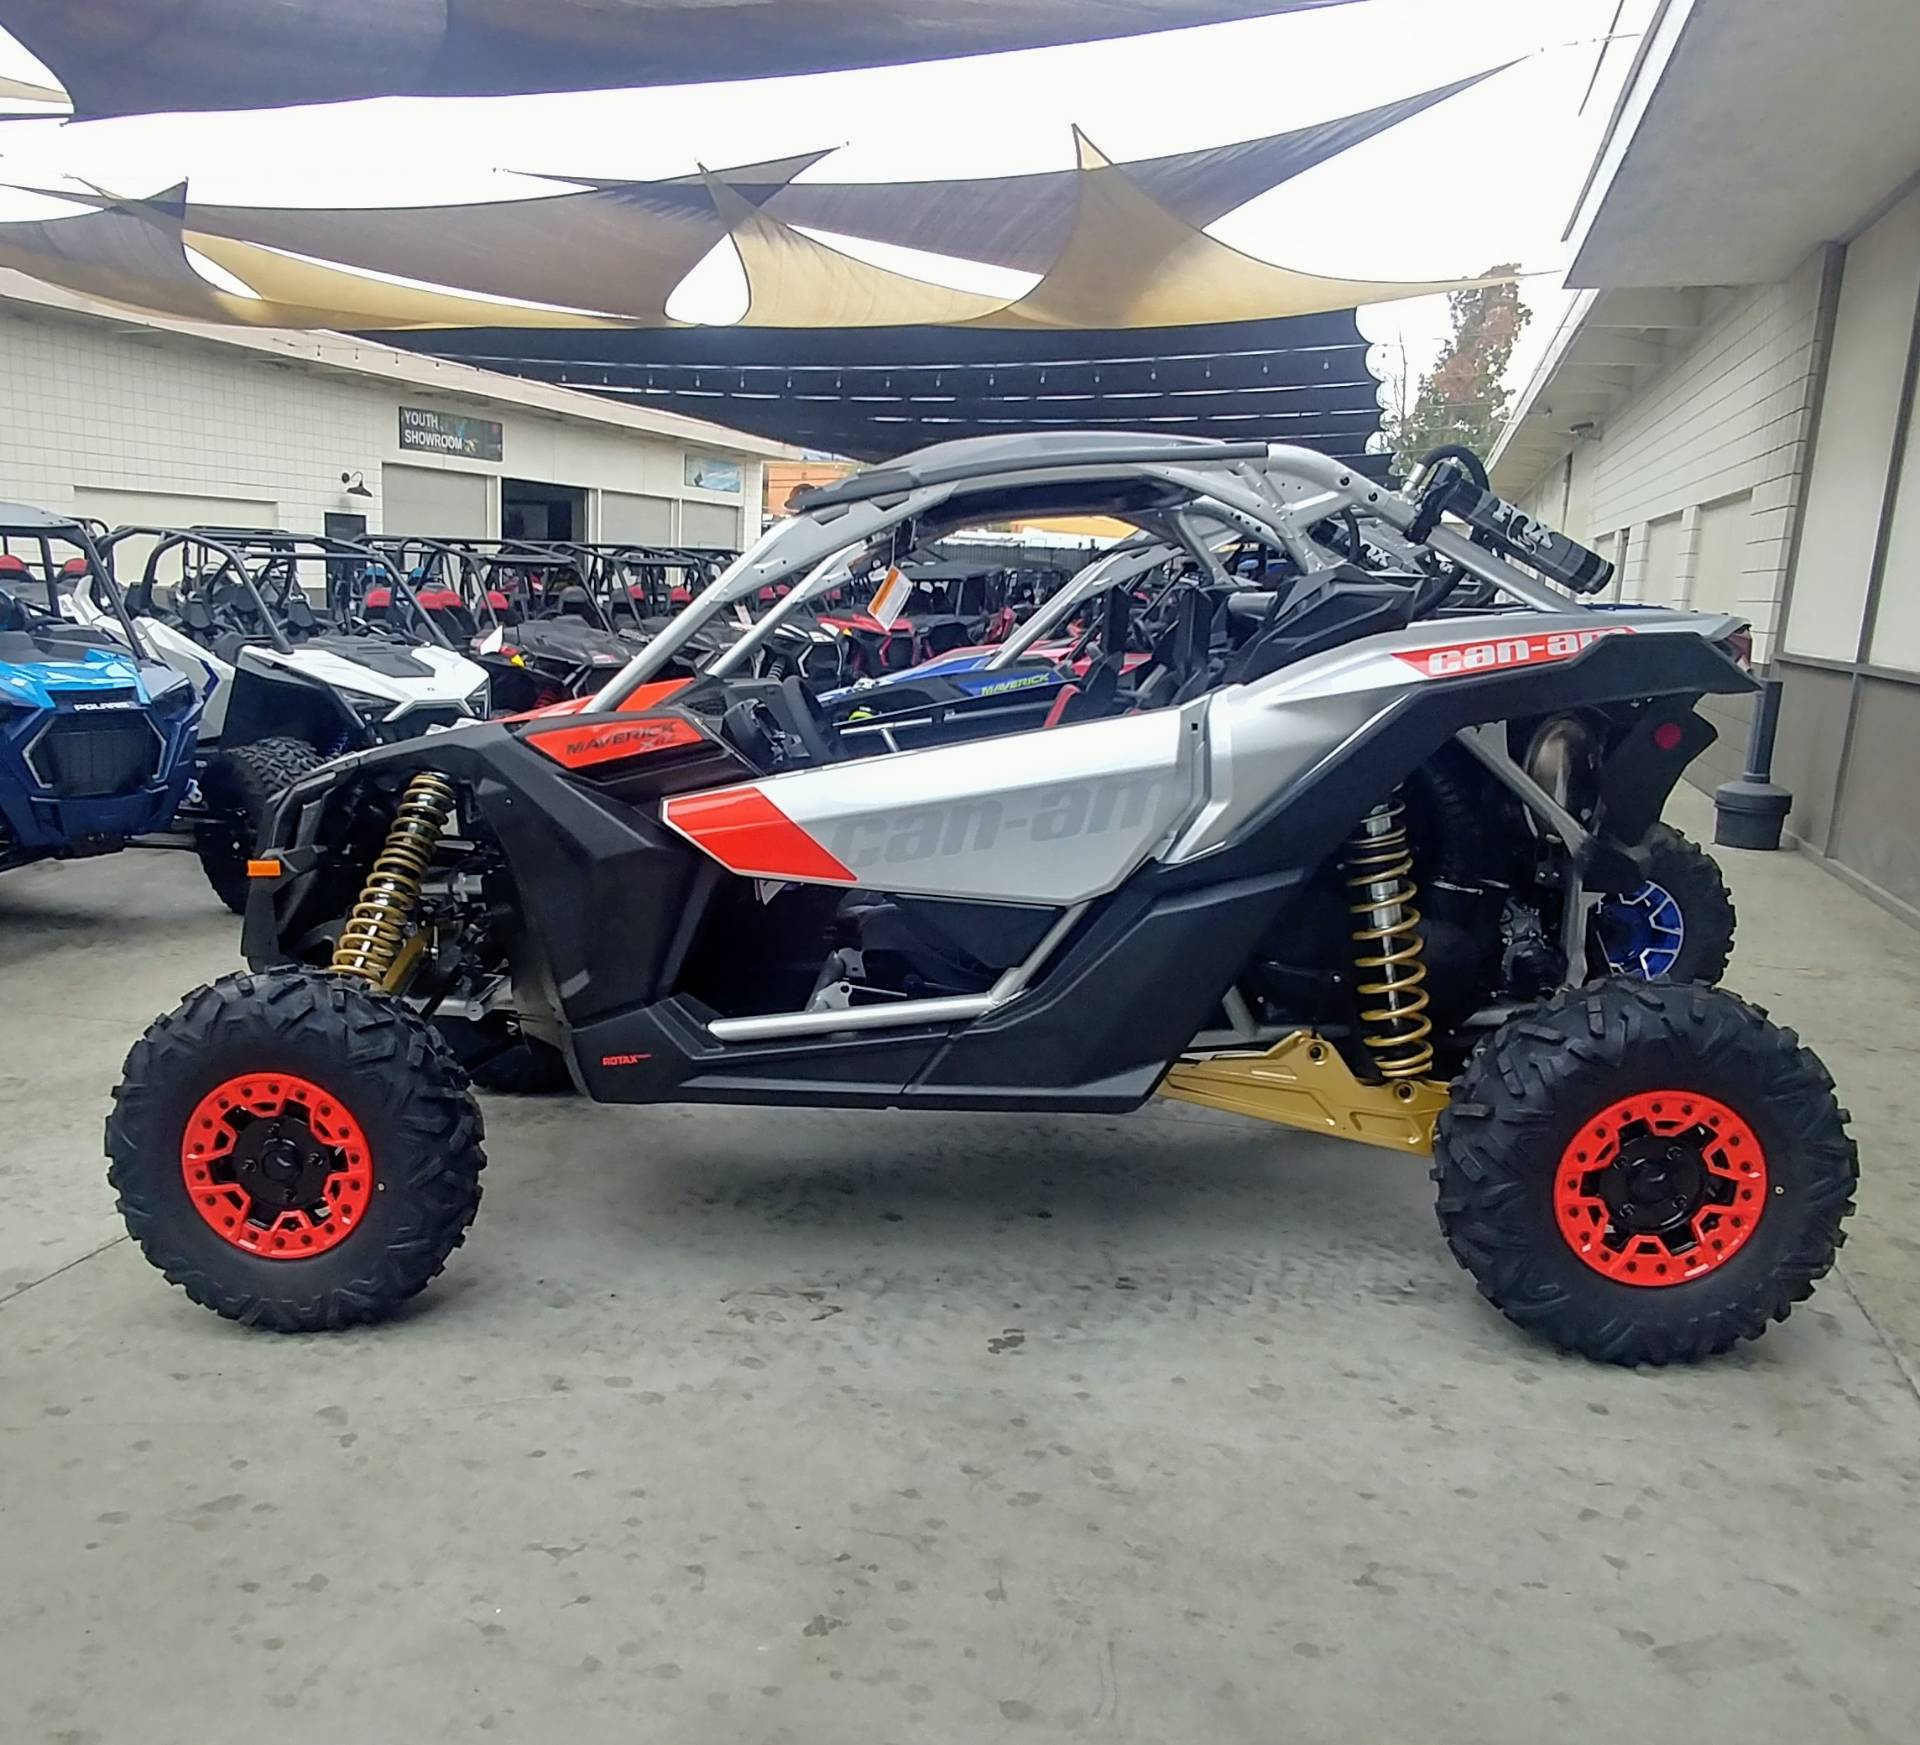 2020 Can-Am Maverick X3 X RS Turbo RR in Ontario, California - Photo 2